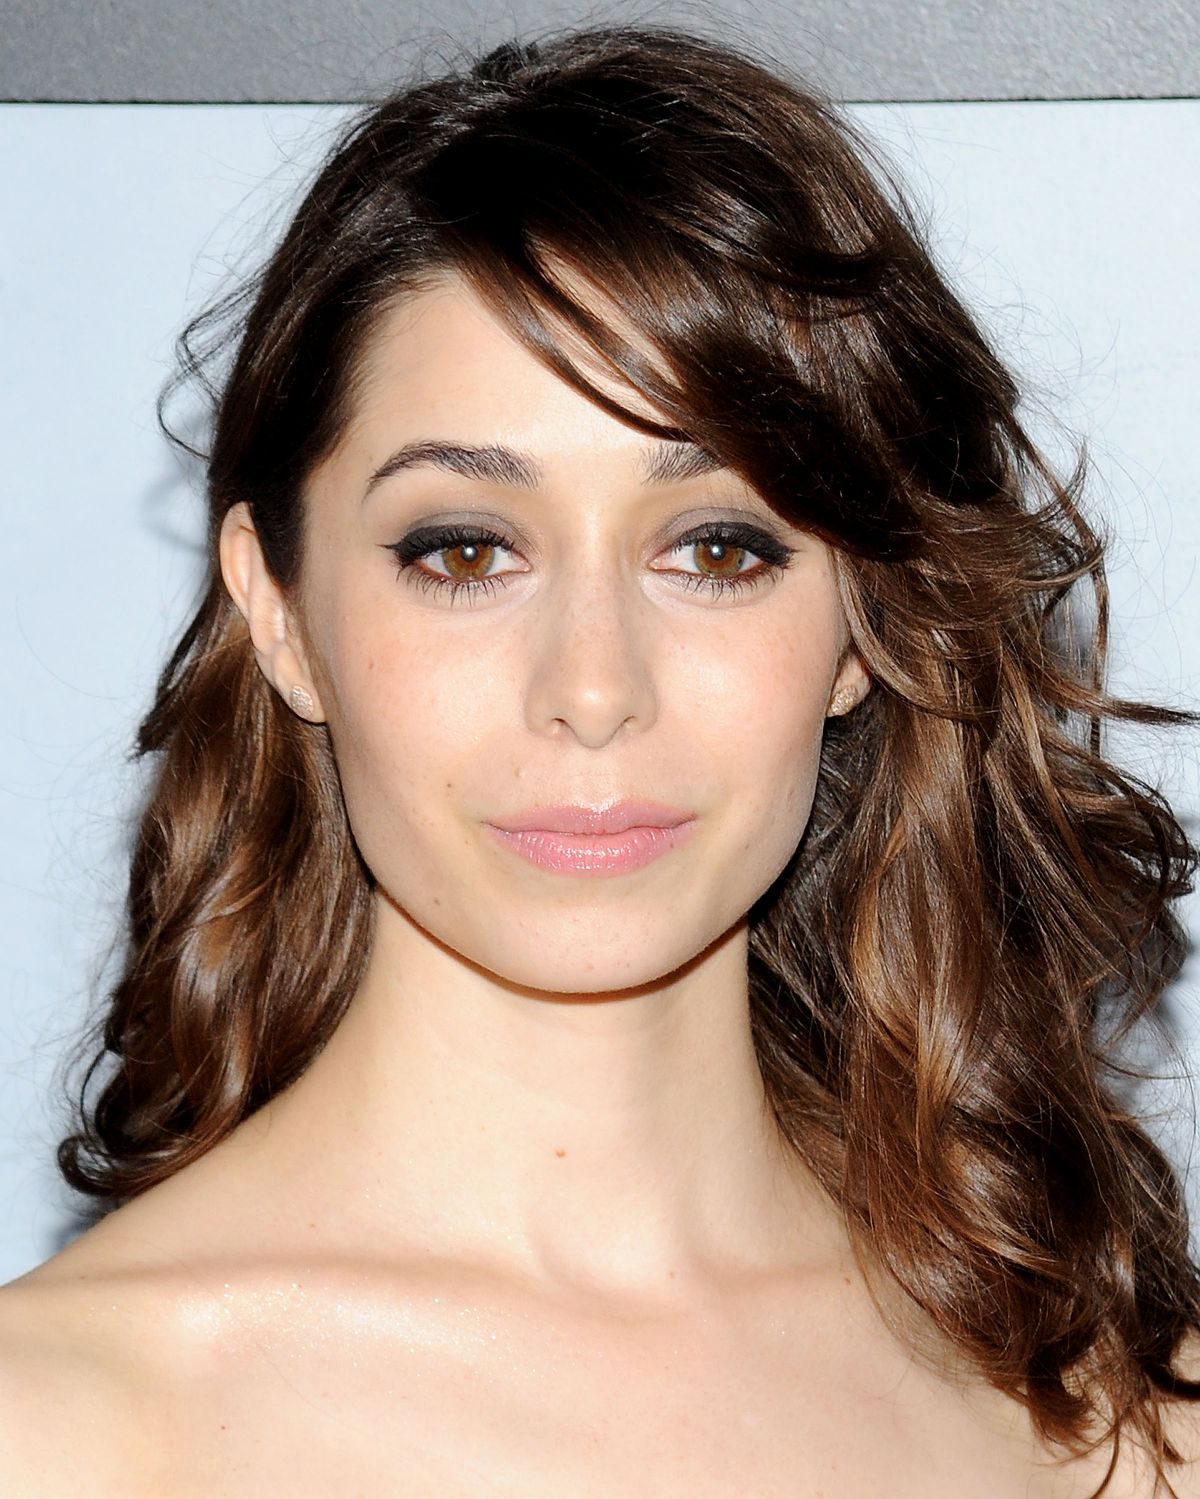 Cristin Milioti At The Wolf Of Wall Street Premiere In NY